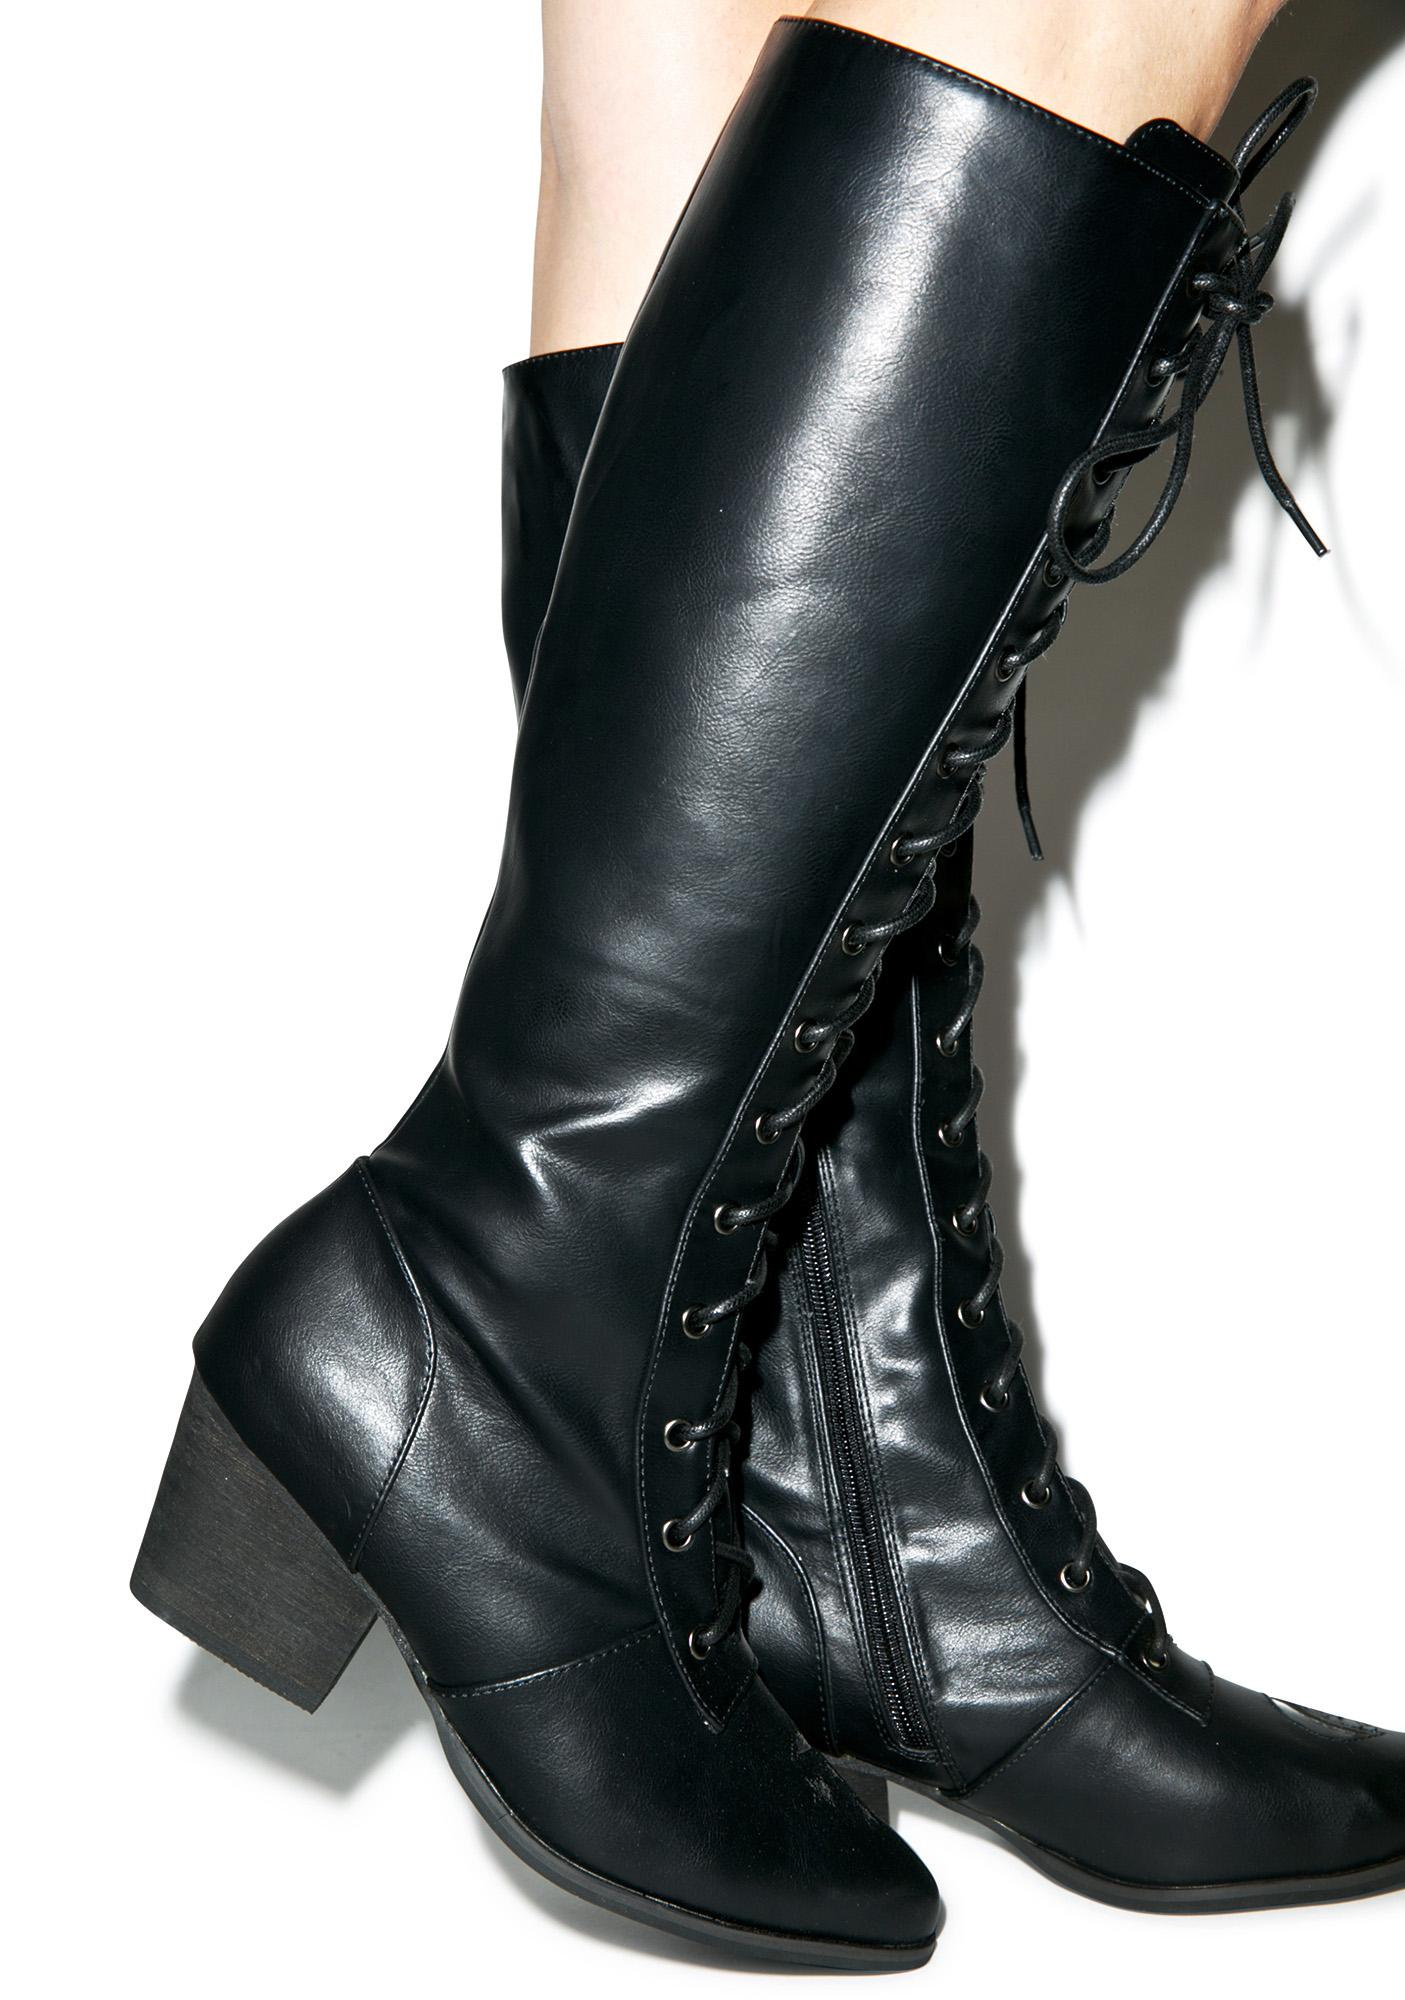 Y.R.U. Aura Knee High Boots